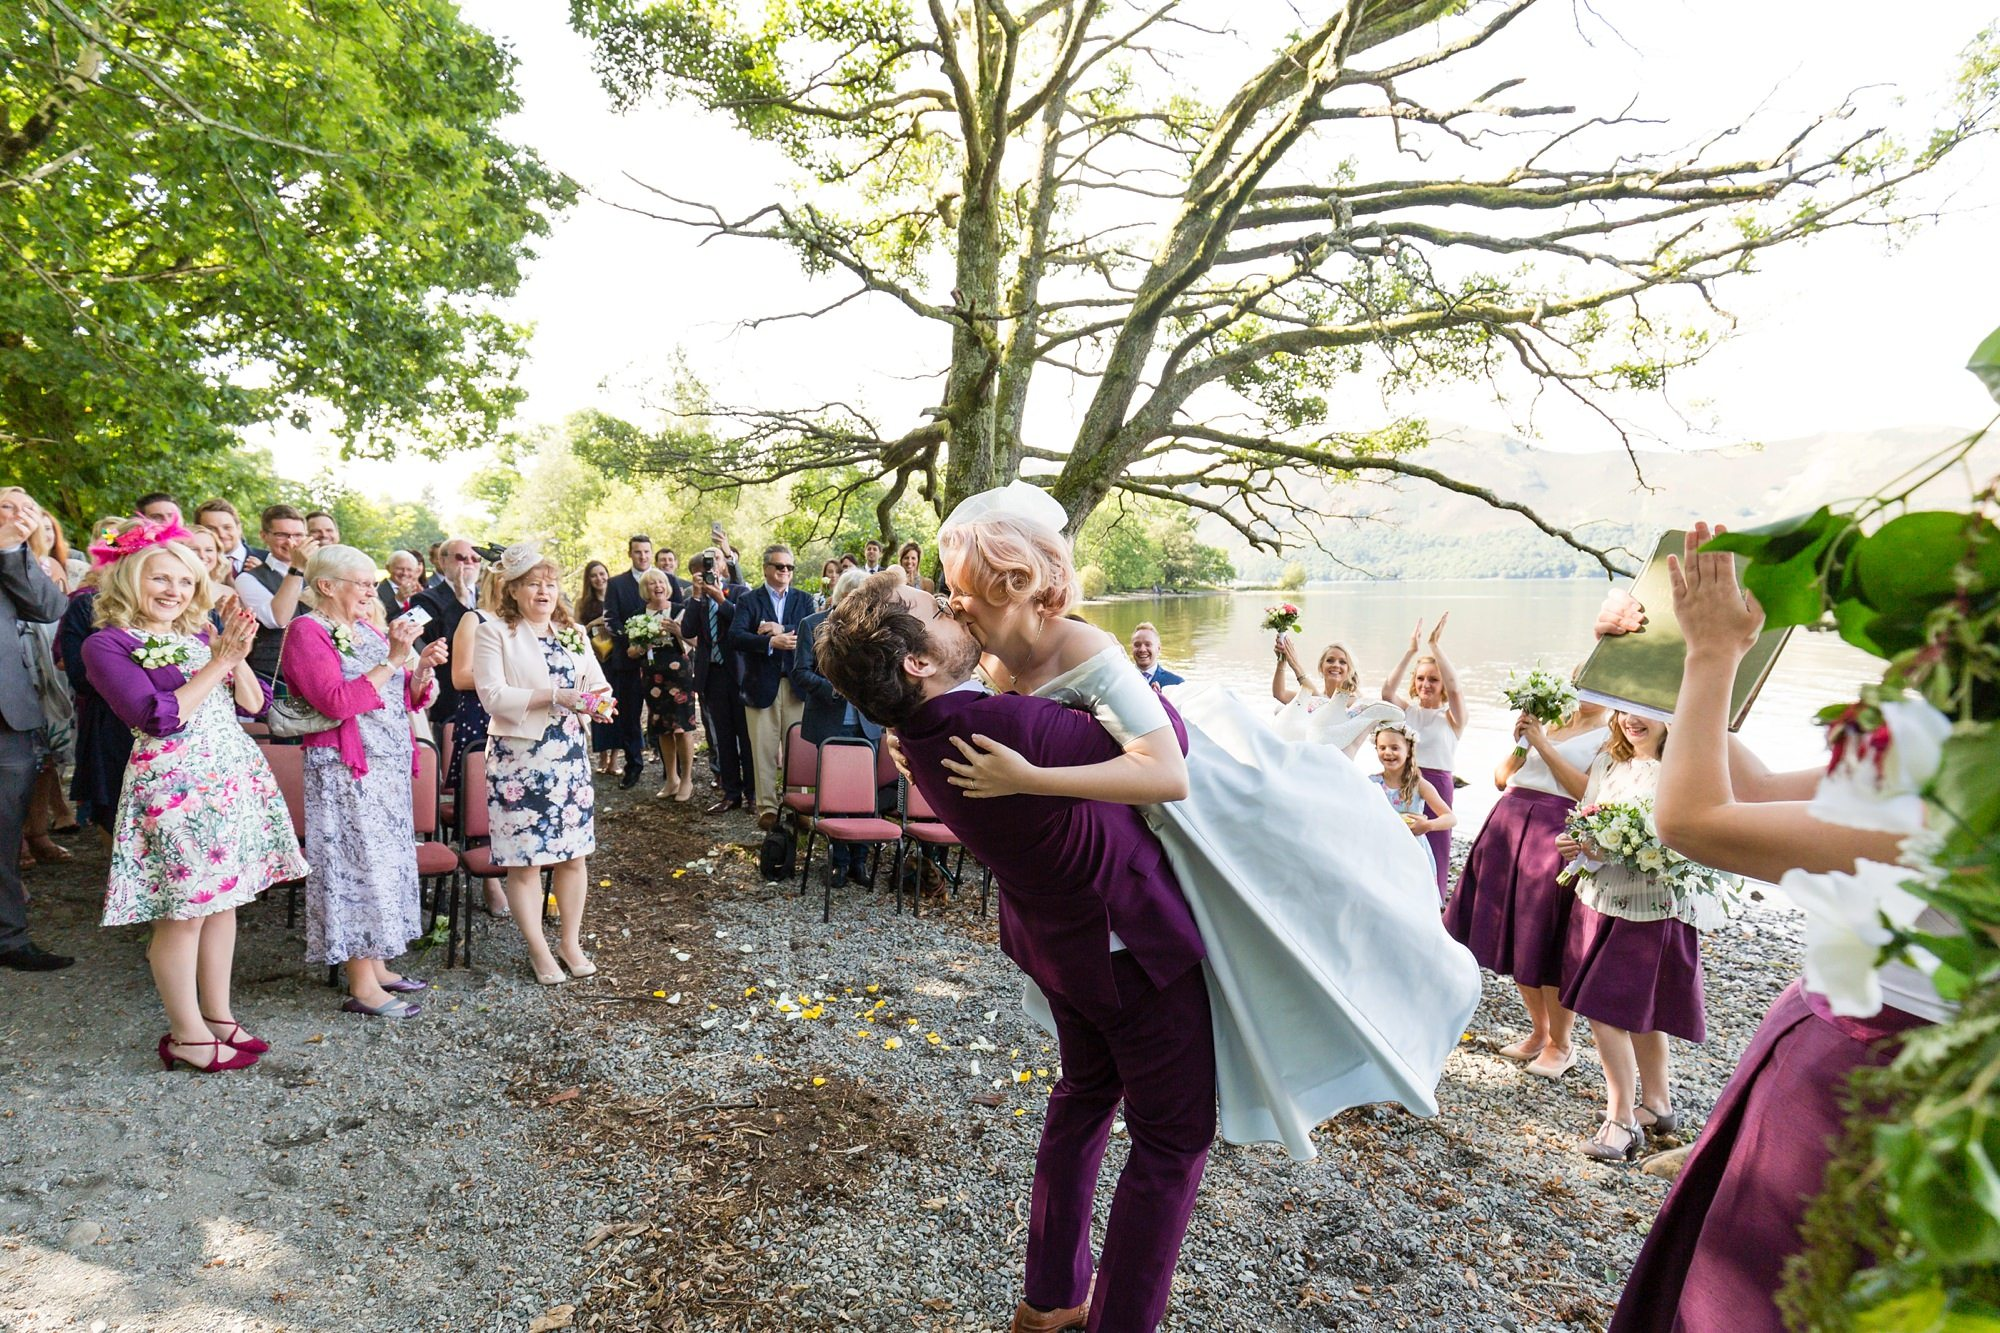 Groom picks up bride to kiss during the ceremony Derwentwater Independent Hostel Wedding